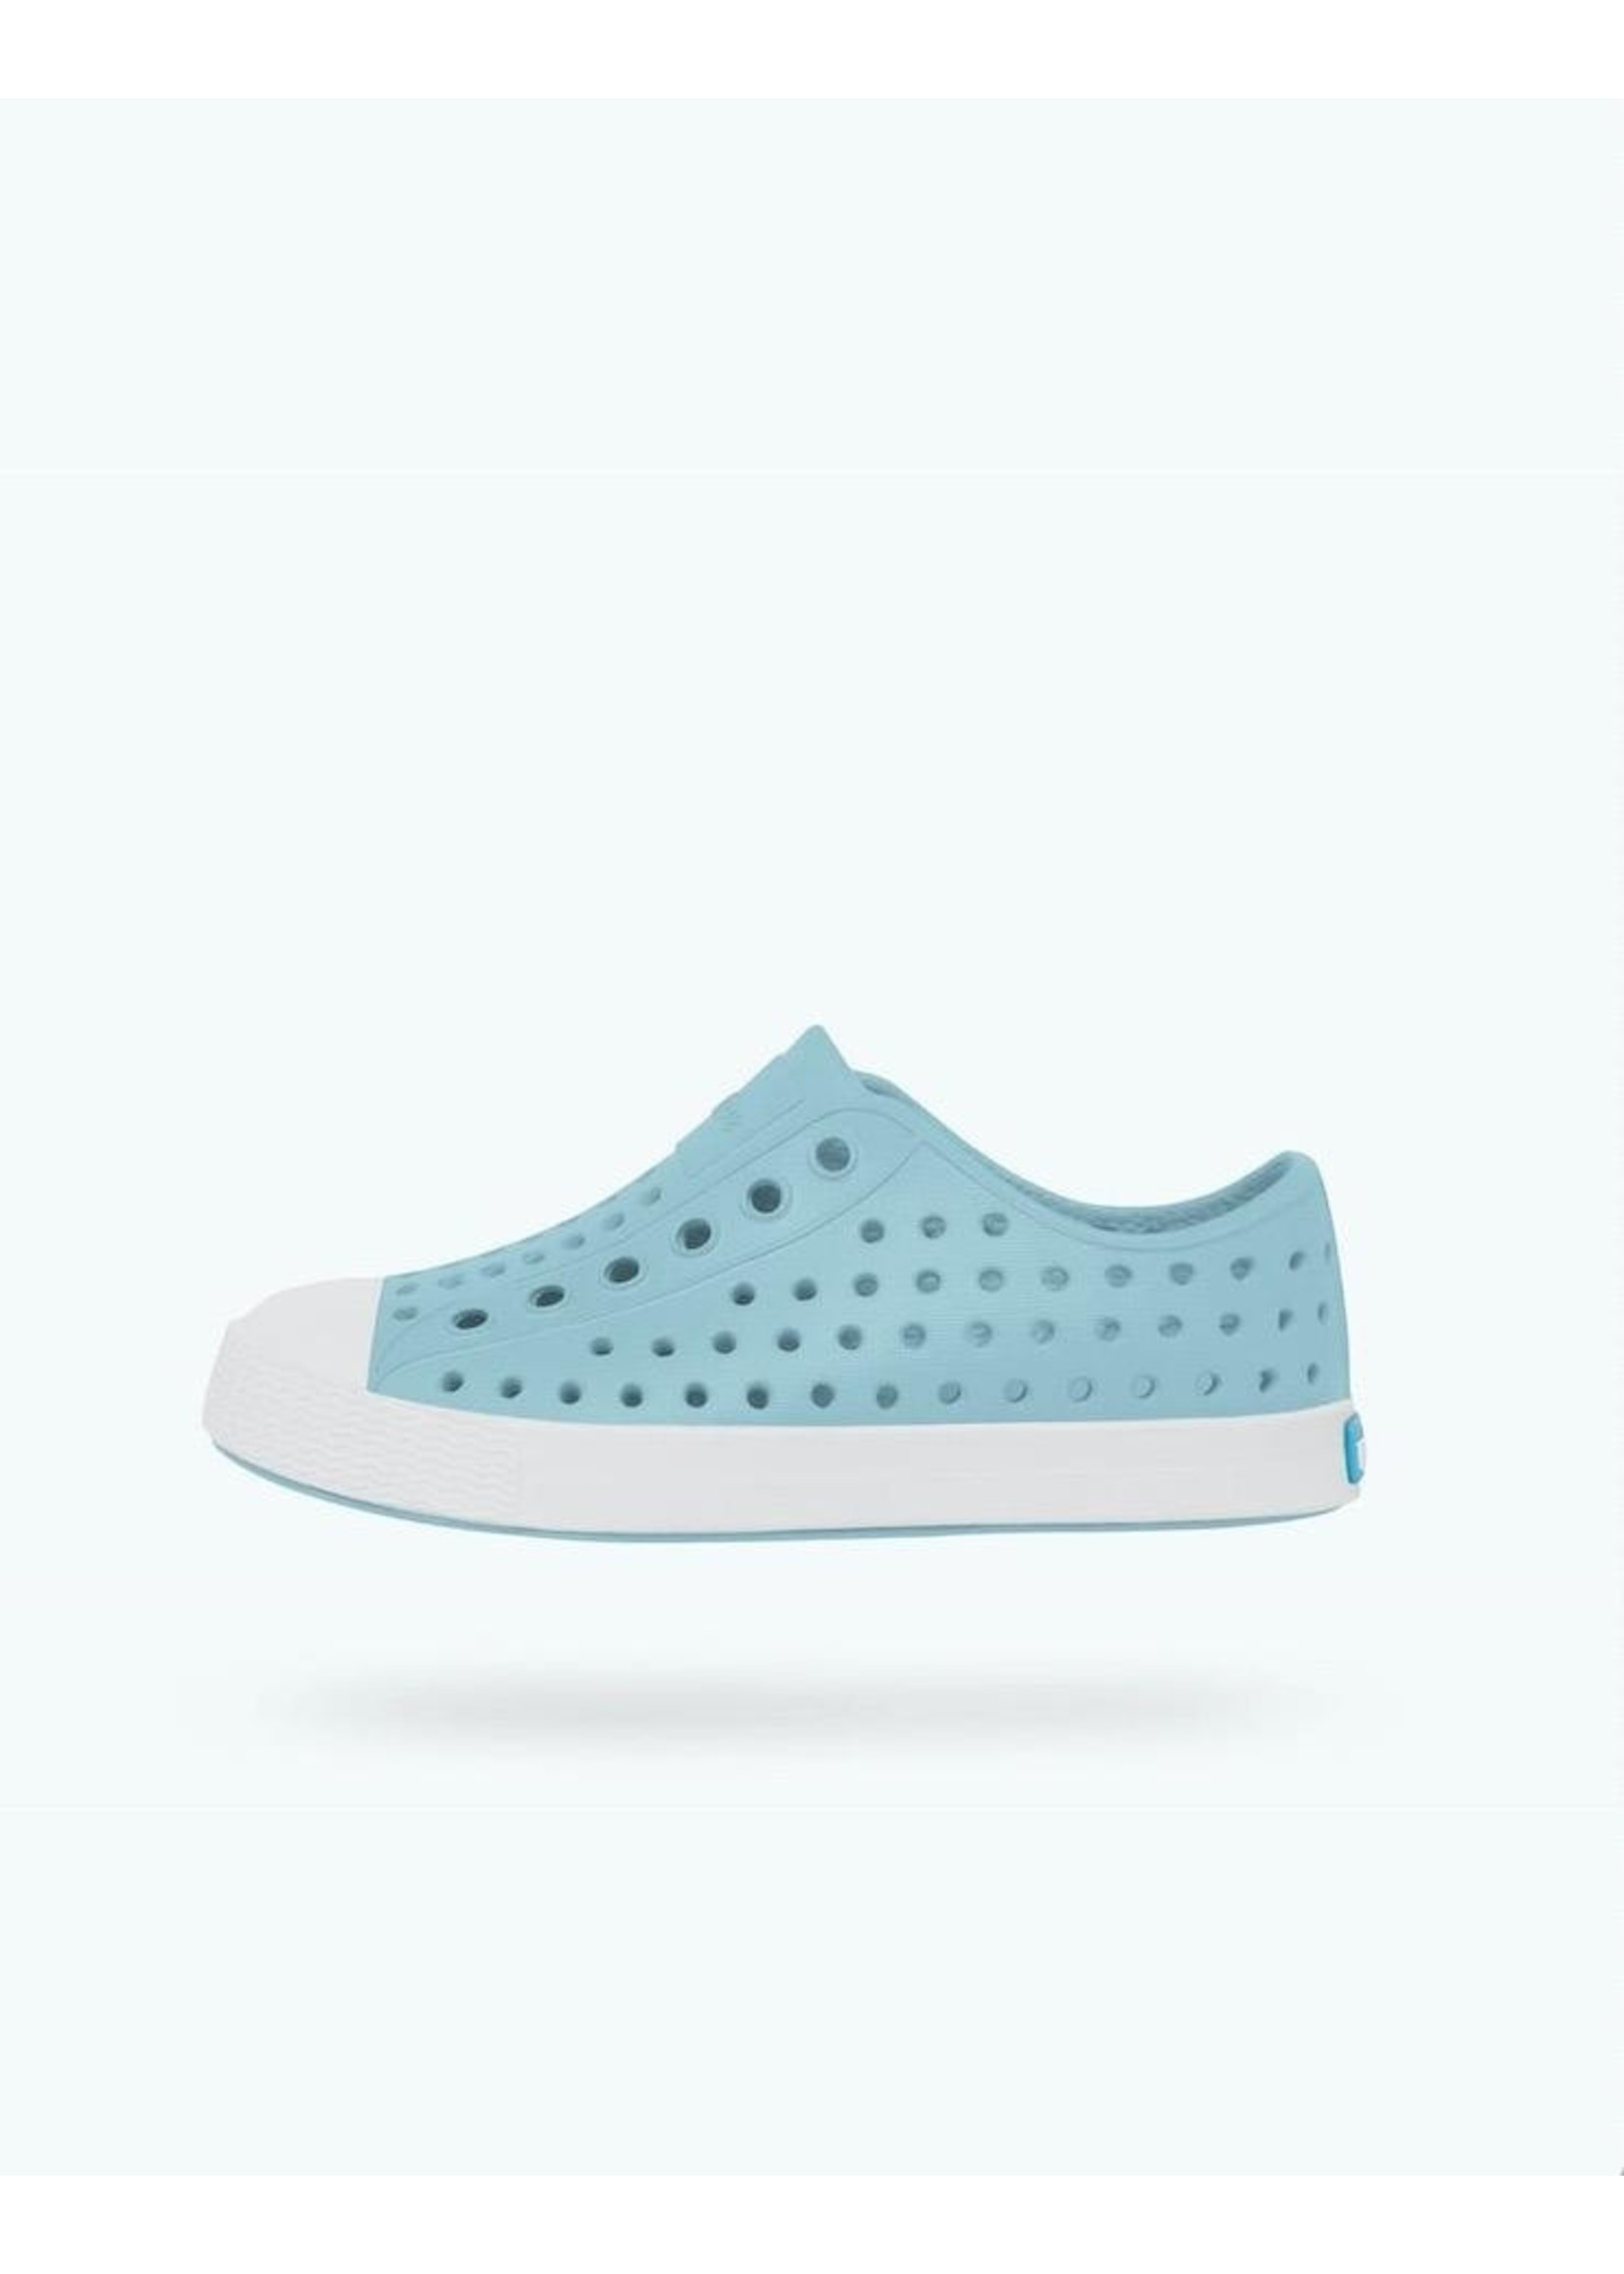 Native Shoes Native Shoes, Jefferson Youth / Junior Sky Blue/ Shell White